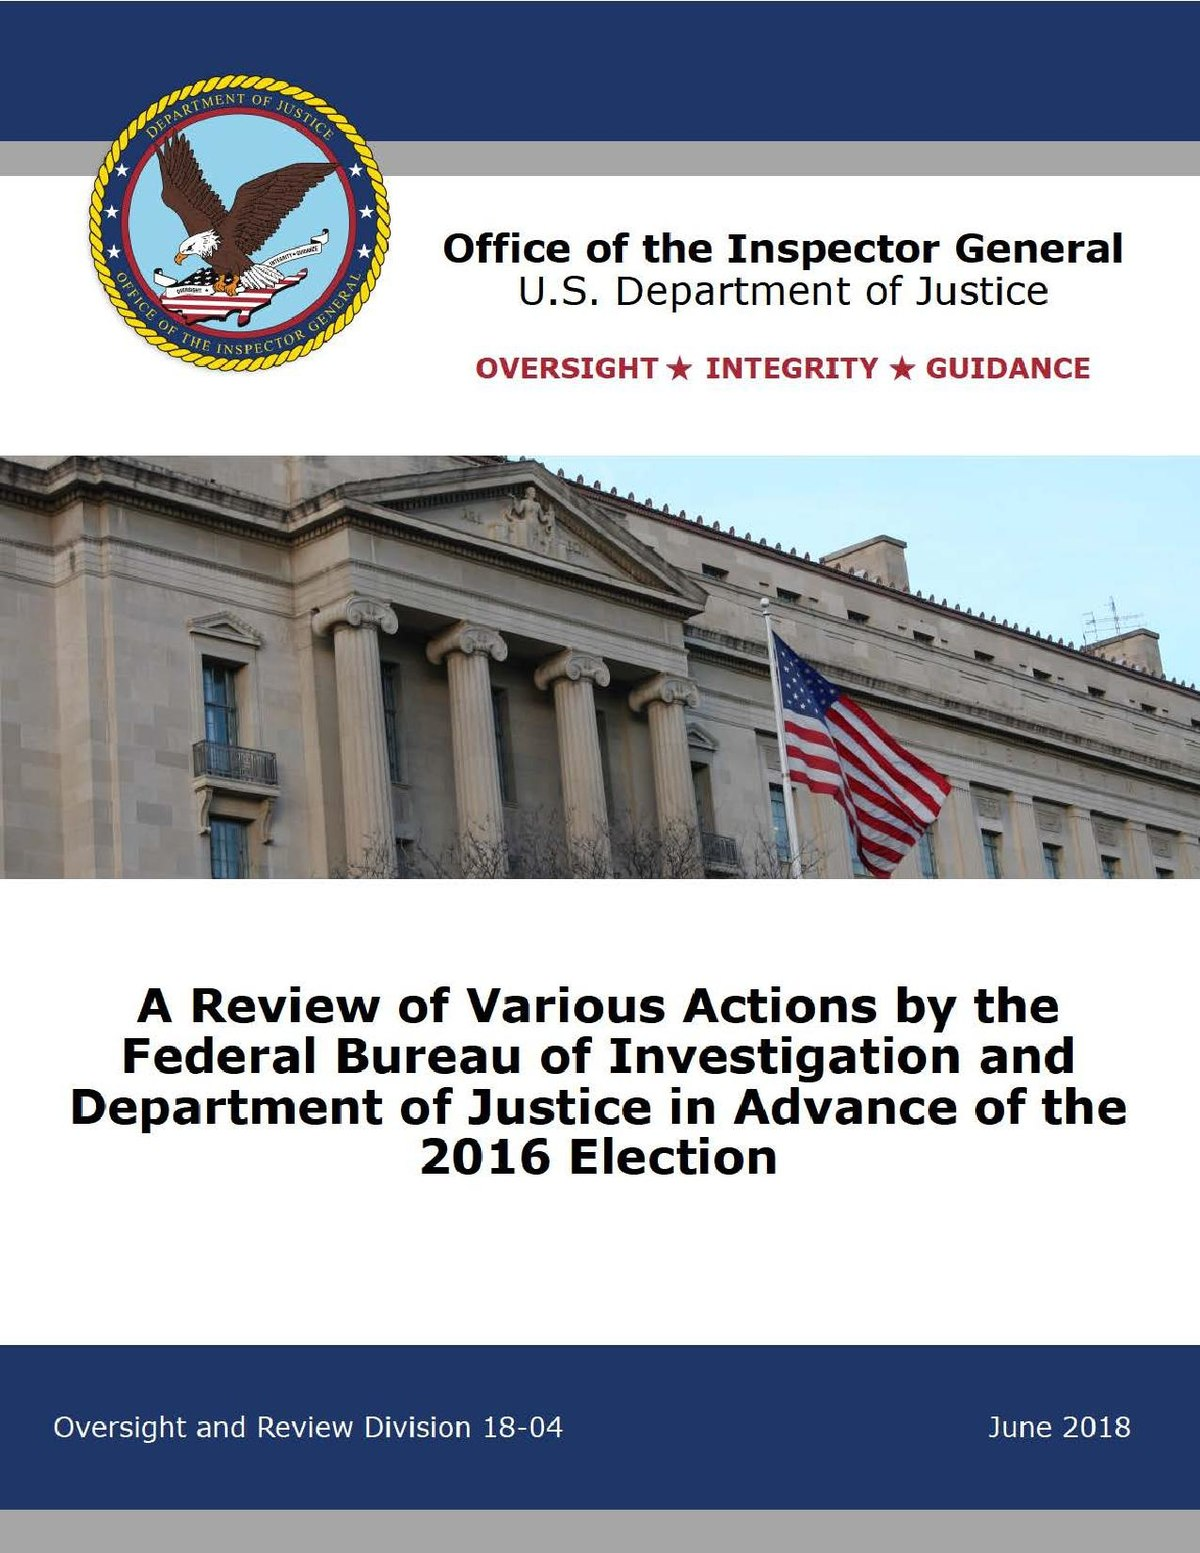 Inspector General report on FBI and DOJ actions in the 2016